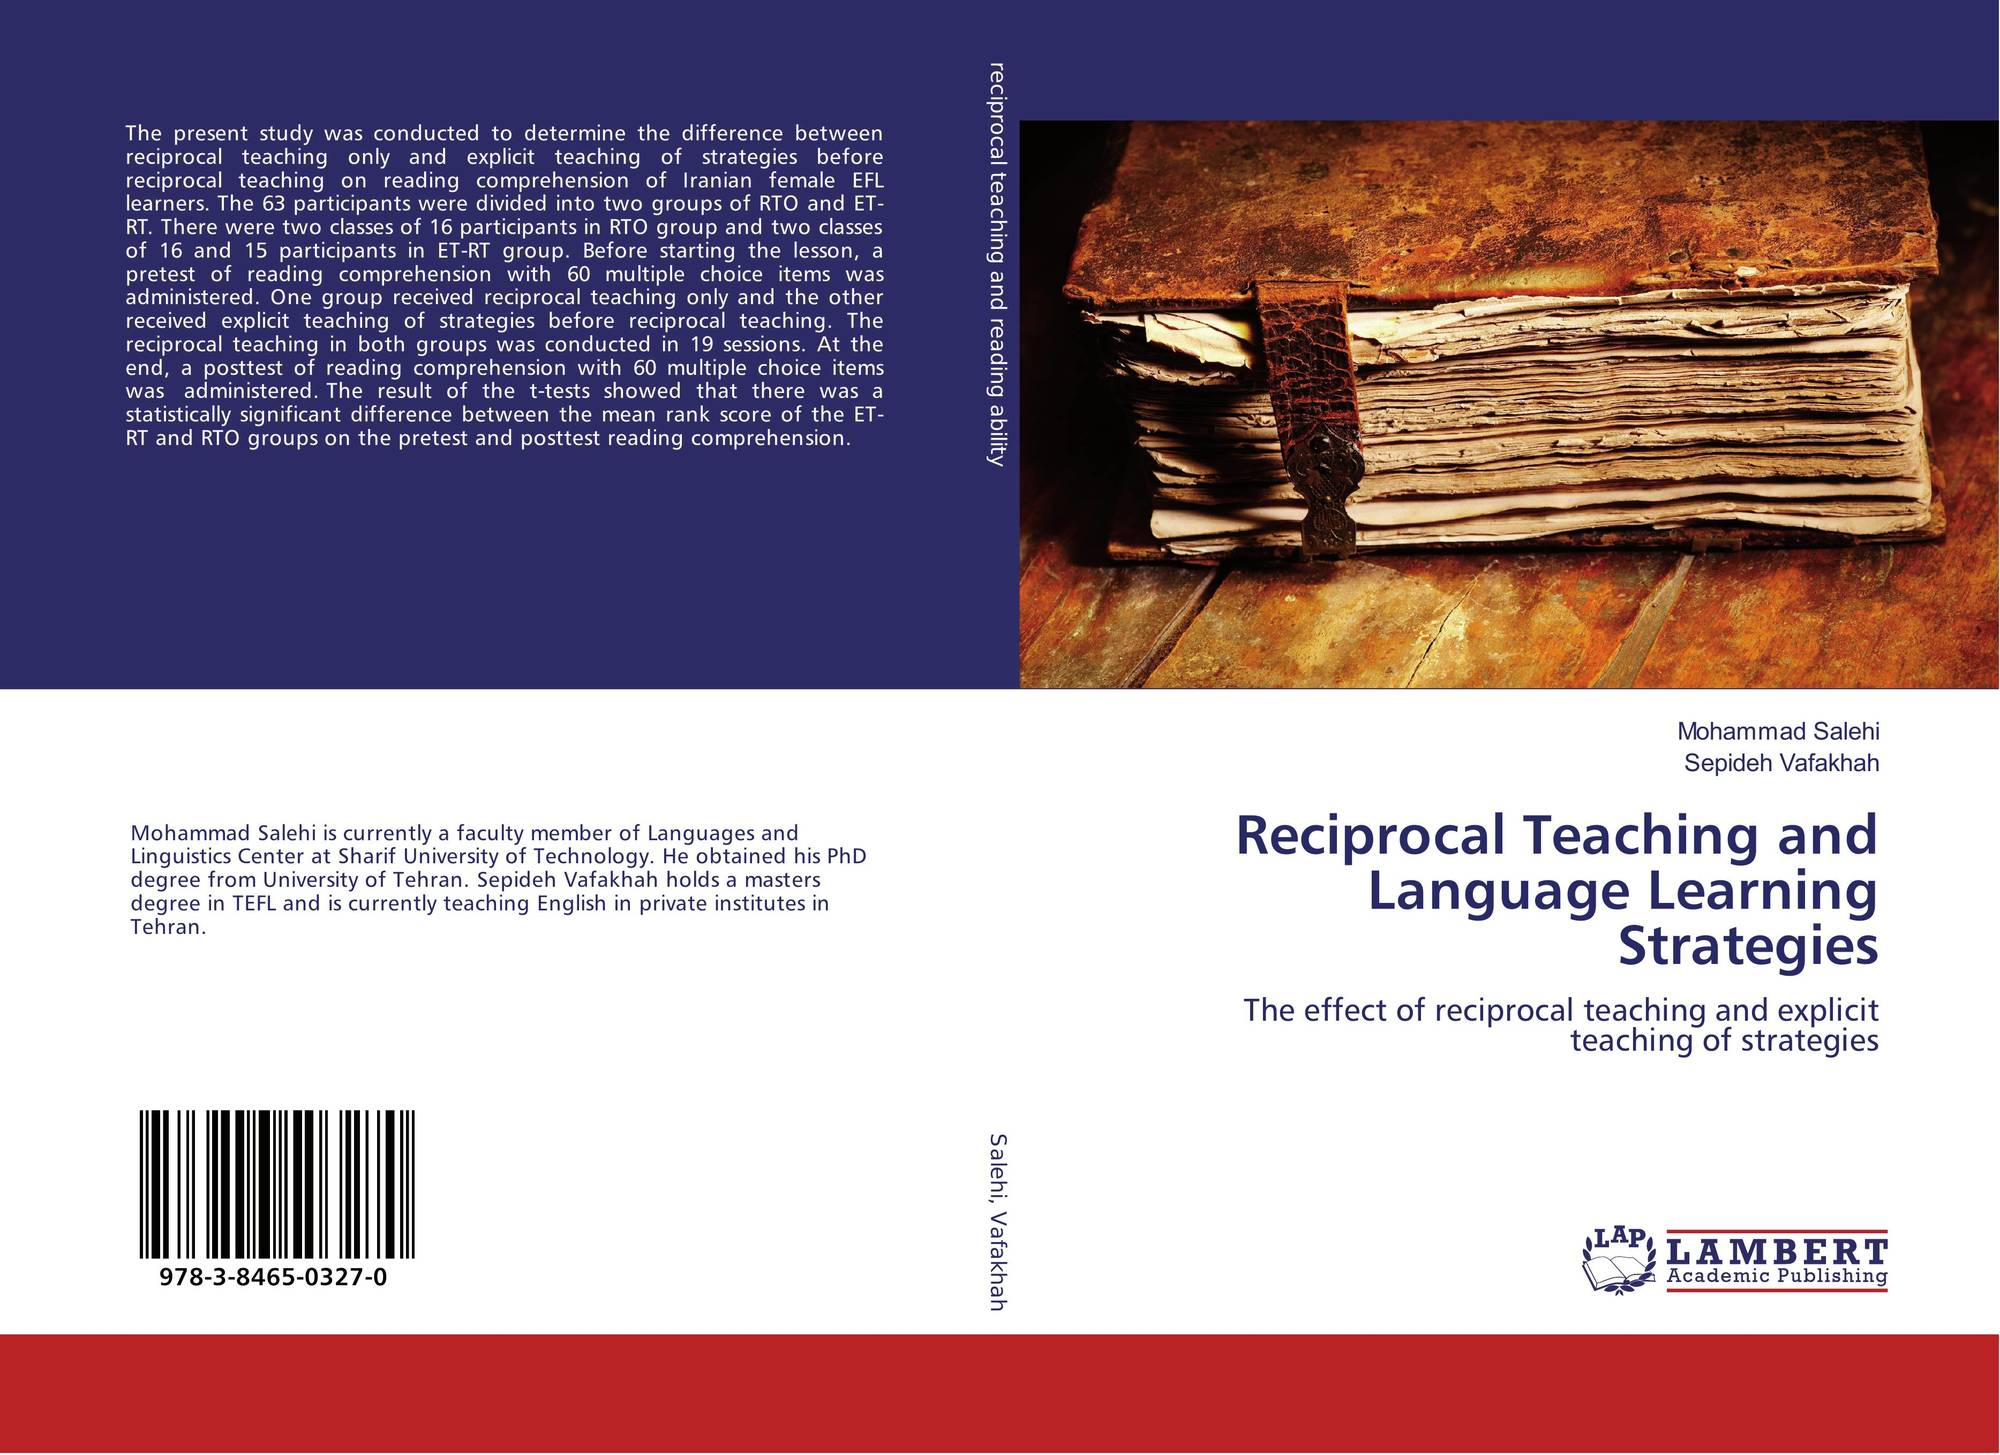 Reciprocal Teaching and Language Learning Strategies, 978-3